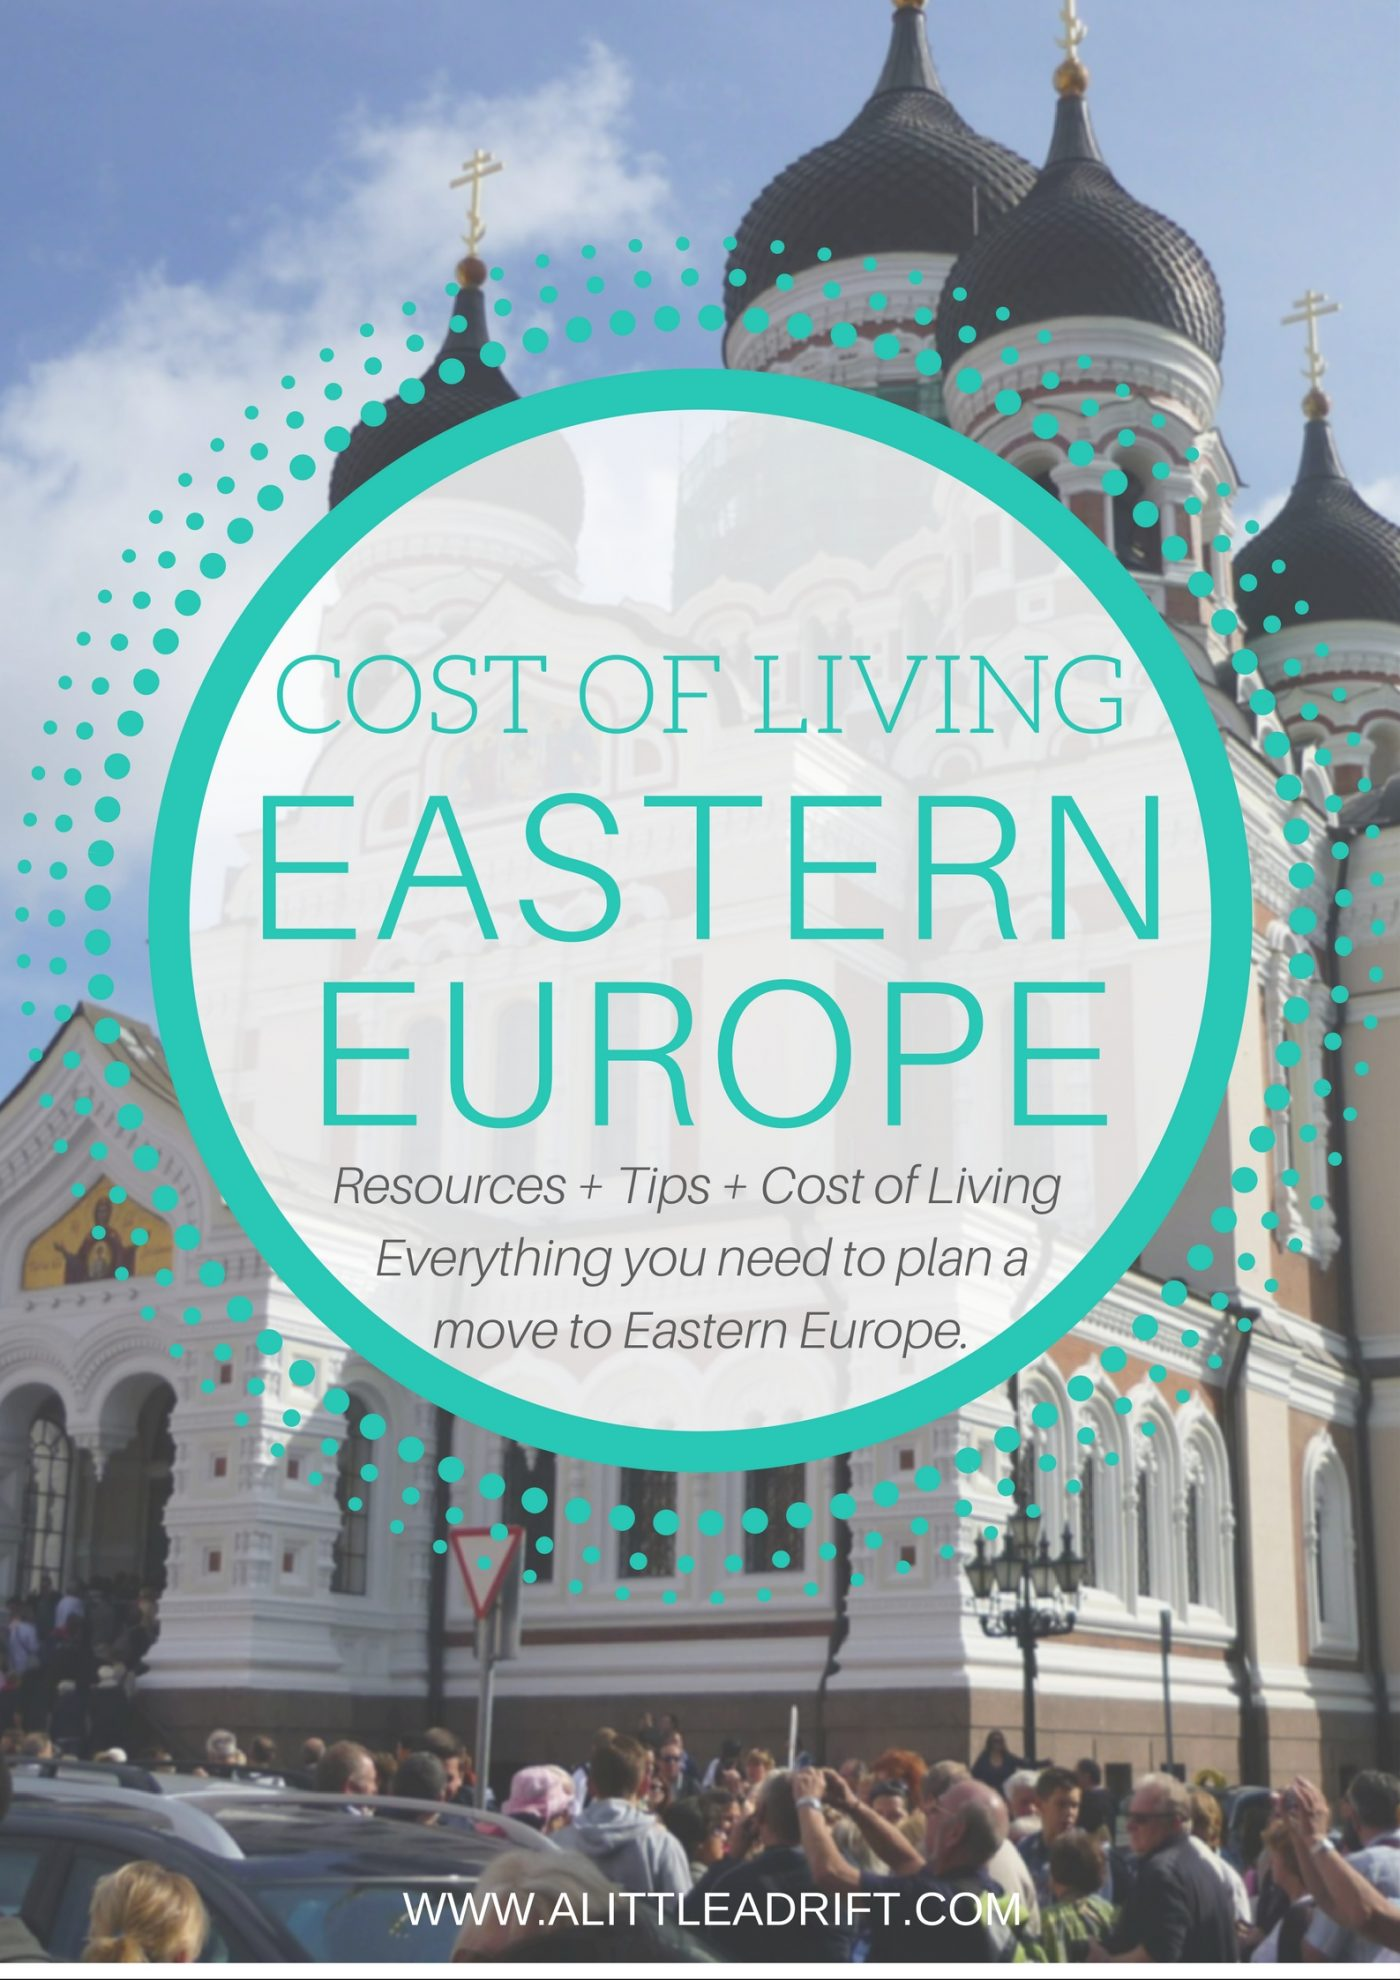 How Much Does it Cost to Live in Eastern Europe? (2019)